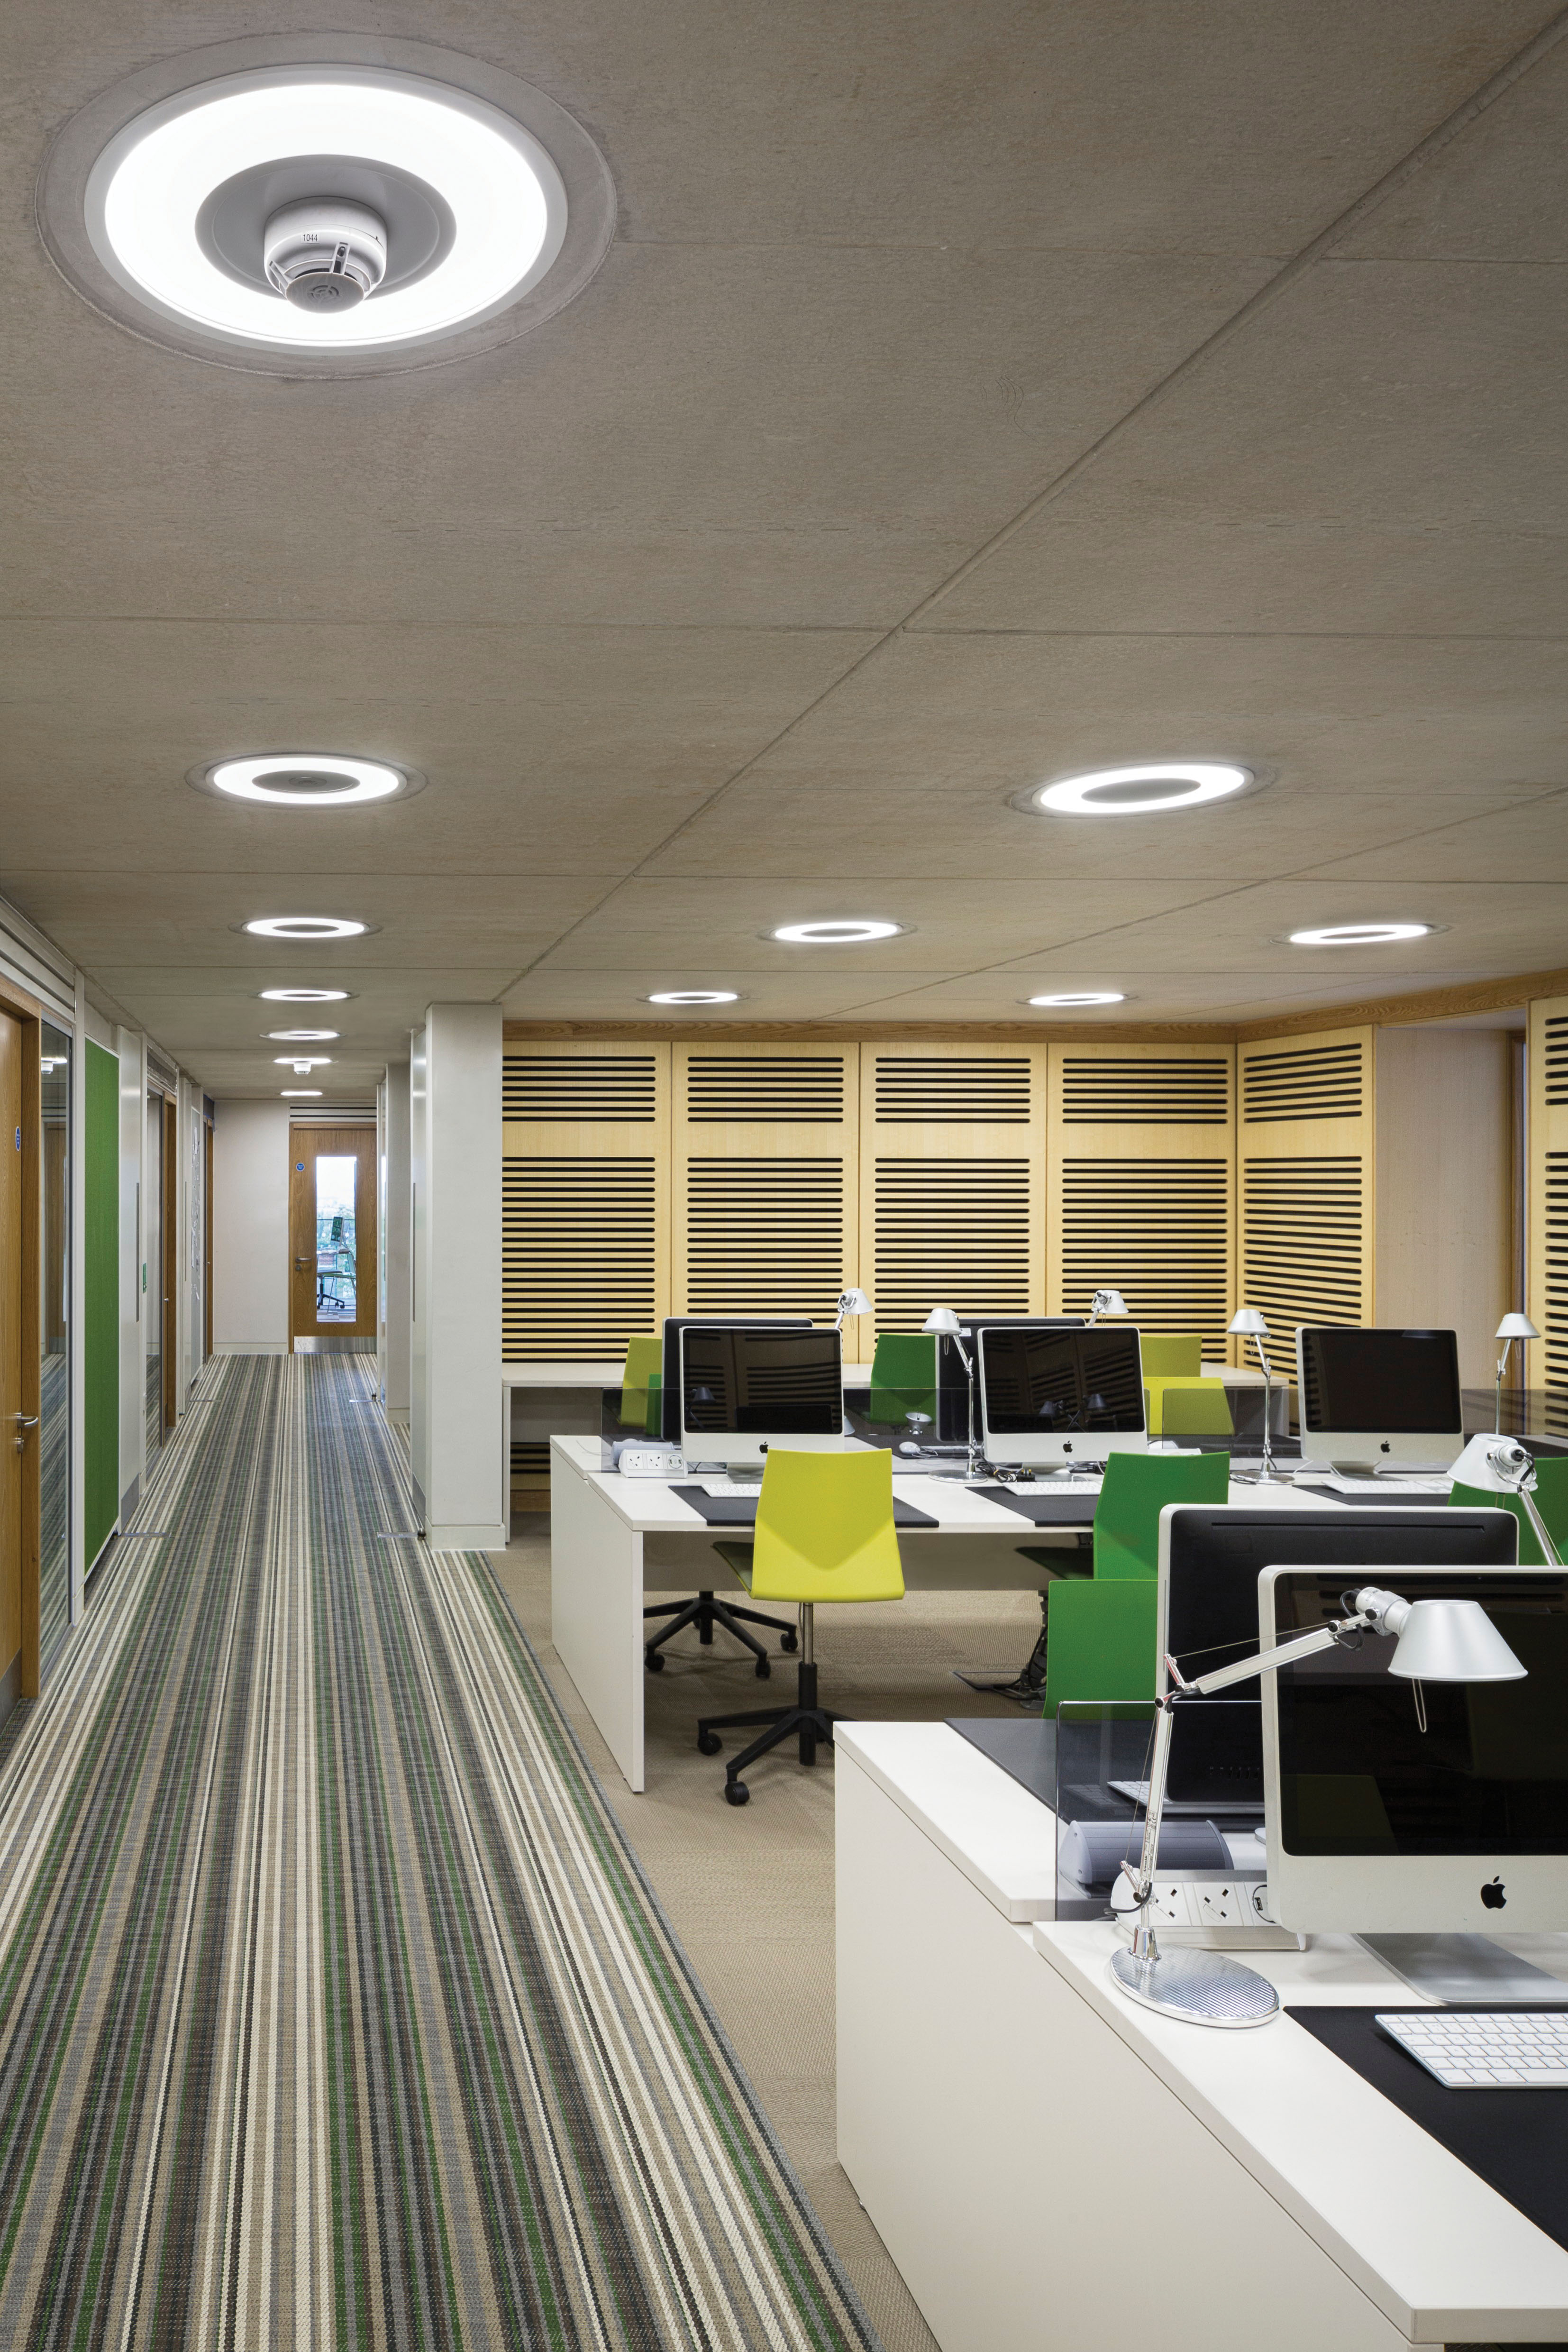 Designing Schools Fit For The Future Education Business